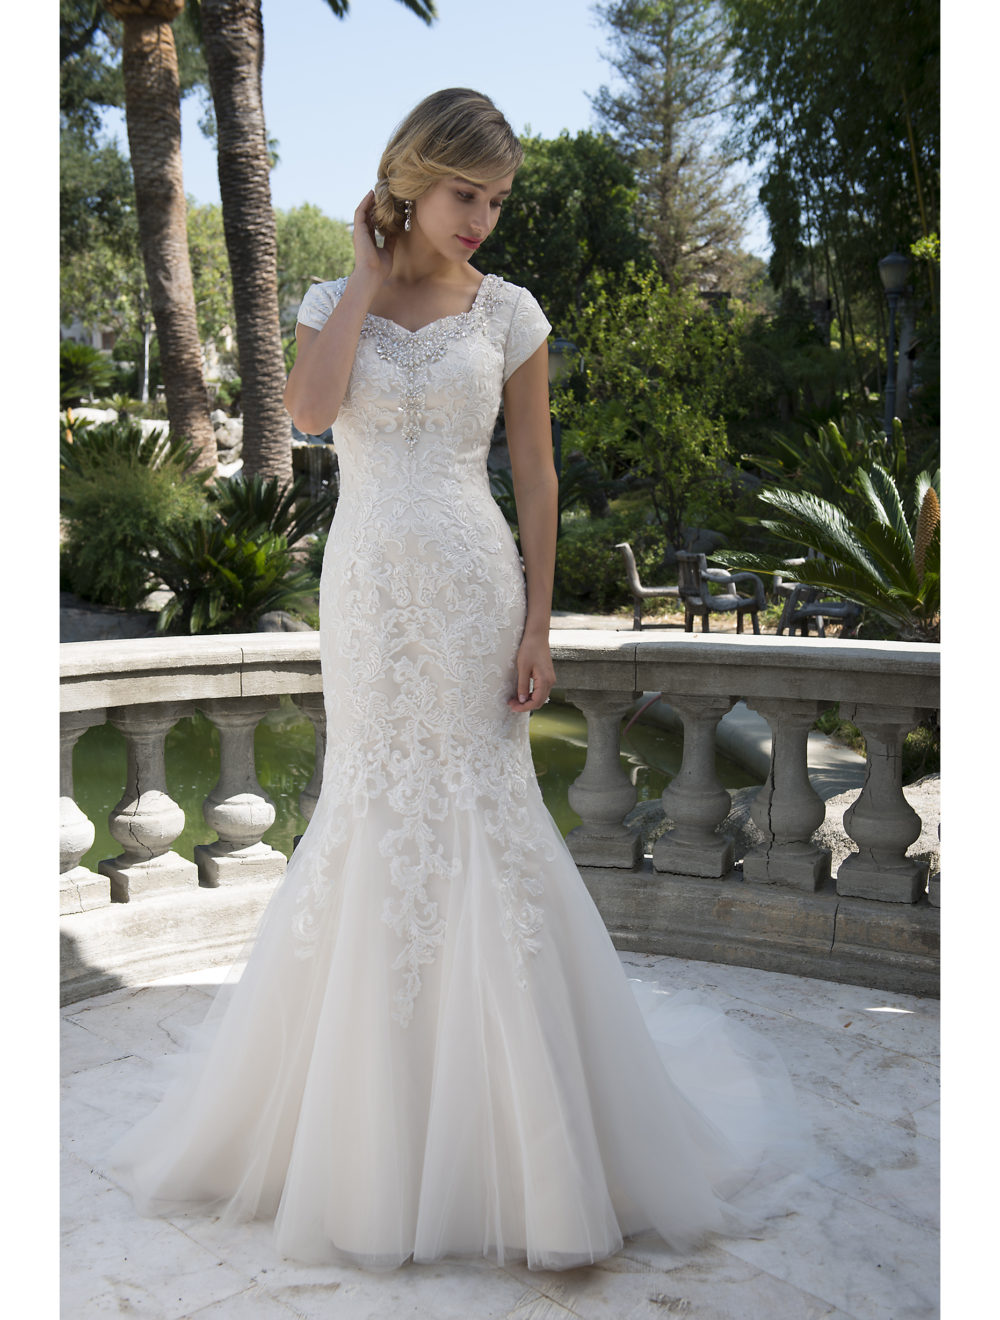 Wedding Dresses For The Mature Bride : Buy wholesale wedding dresses for mature brides